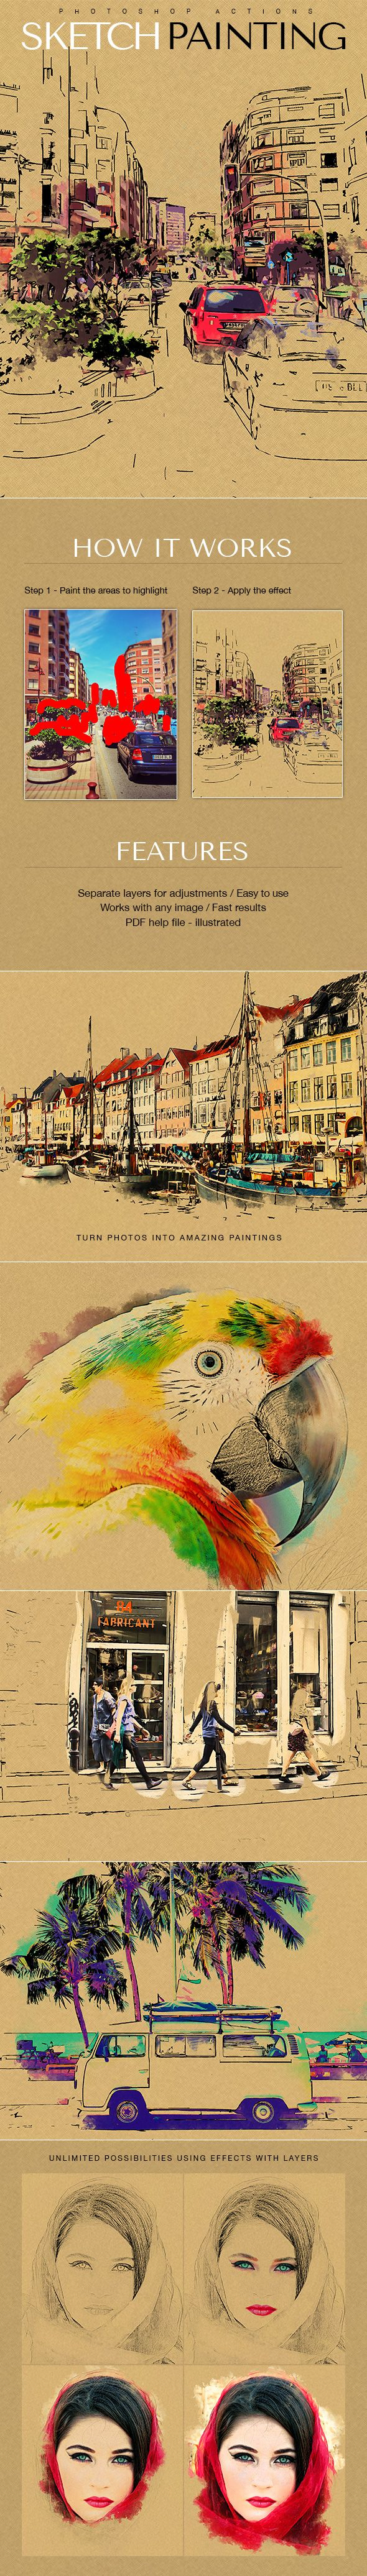 Sketch Painting Photoshop Action. Download here: https://graphicriver.net/item/sketch-painting/17462872?ref=ksioks